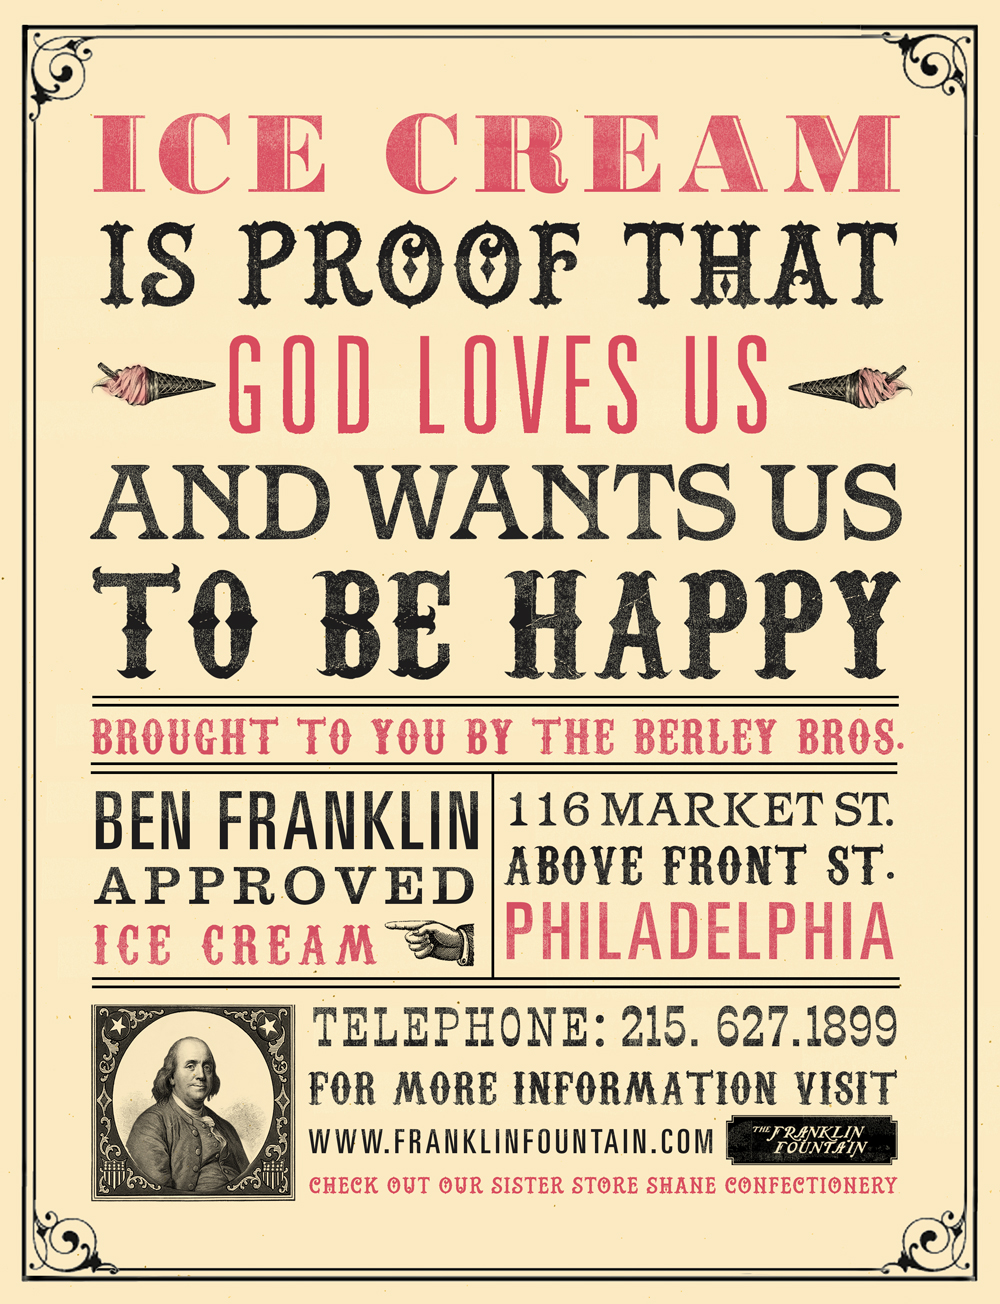 FranklinFountain_print-copy.jpg